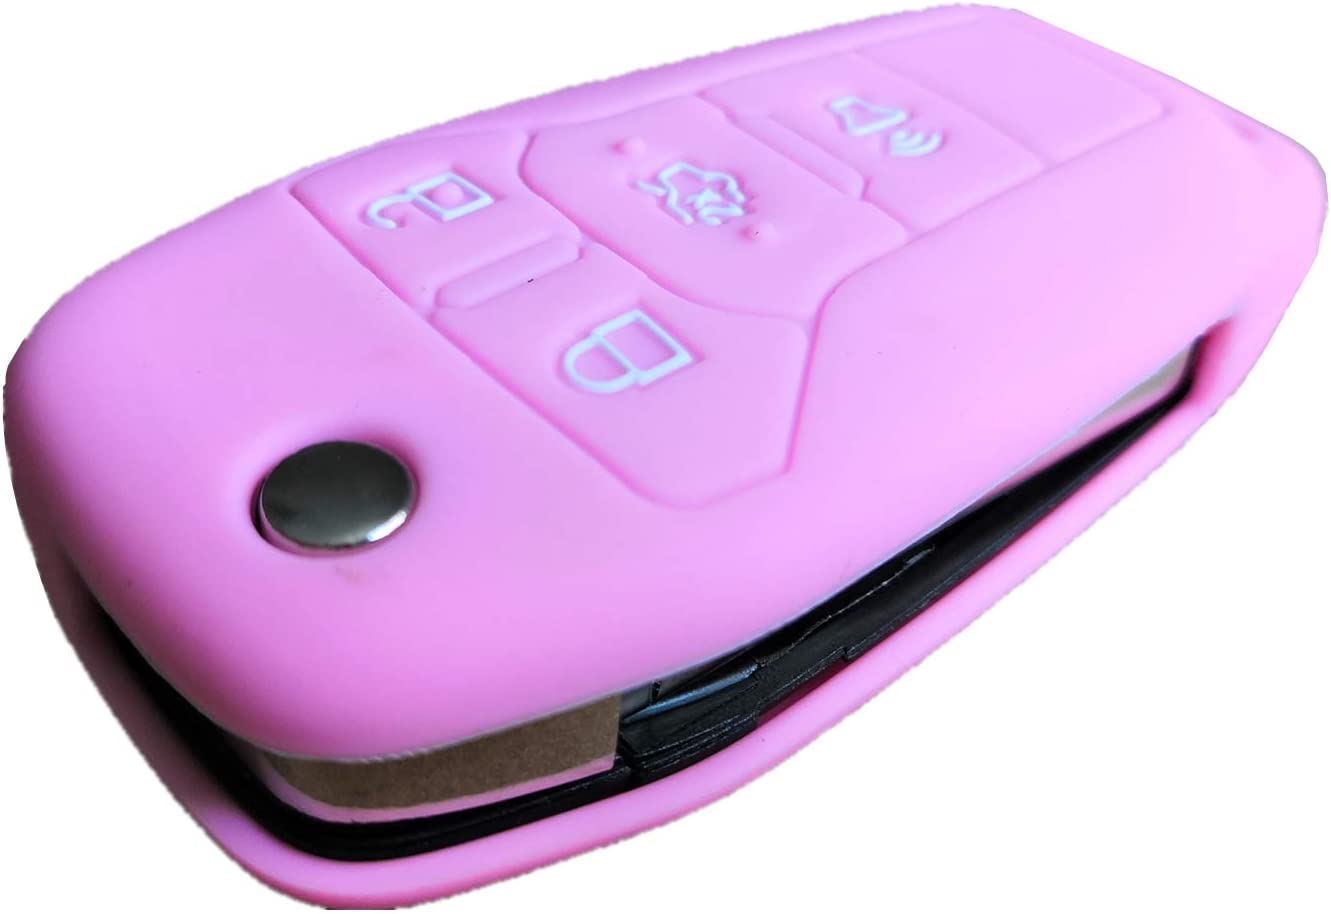 Violet Rpkey Silicone Keyless Entry Remote Control Key Fob Cover Case protector For 2013 2014 2015 2016 Ford Fusion N5F-A08TAA 164-R7986 3248-A08TAA